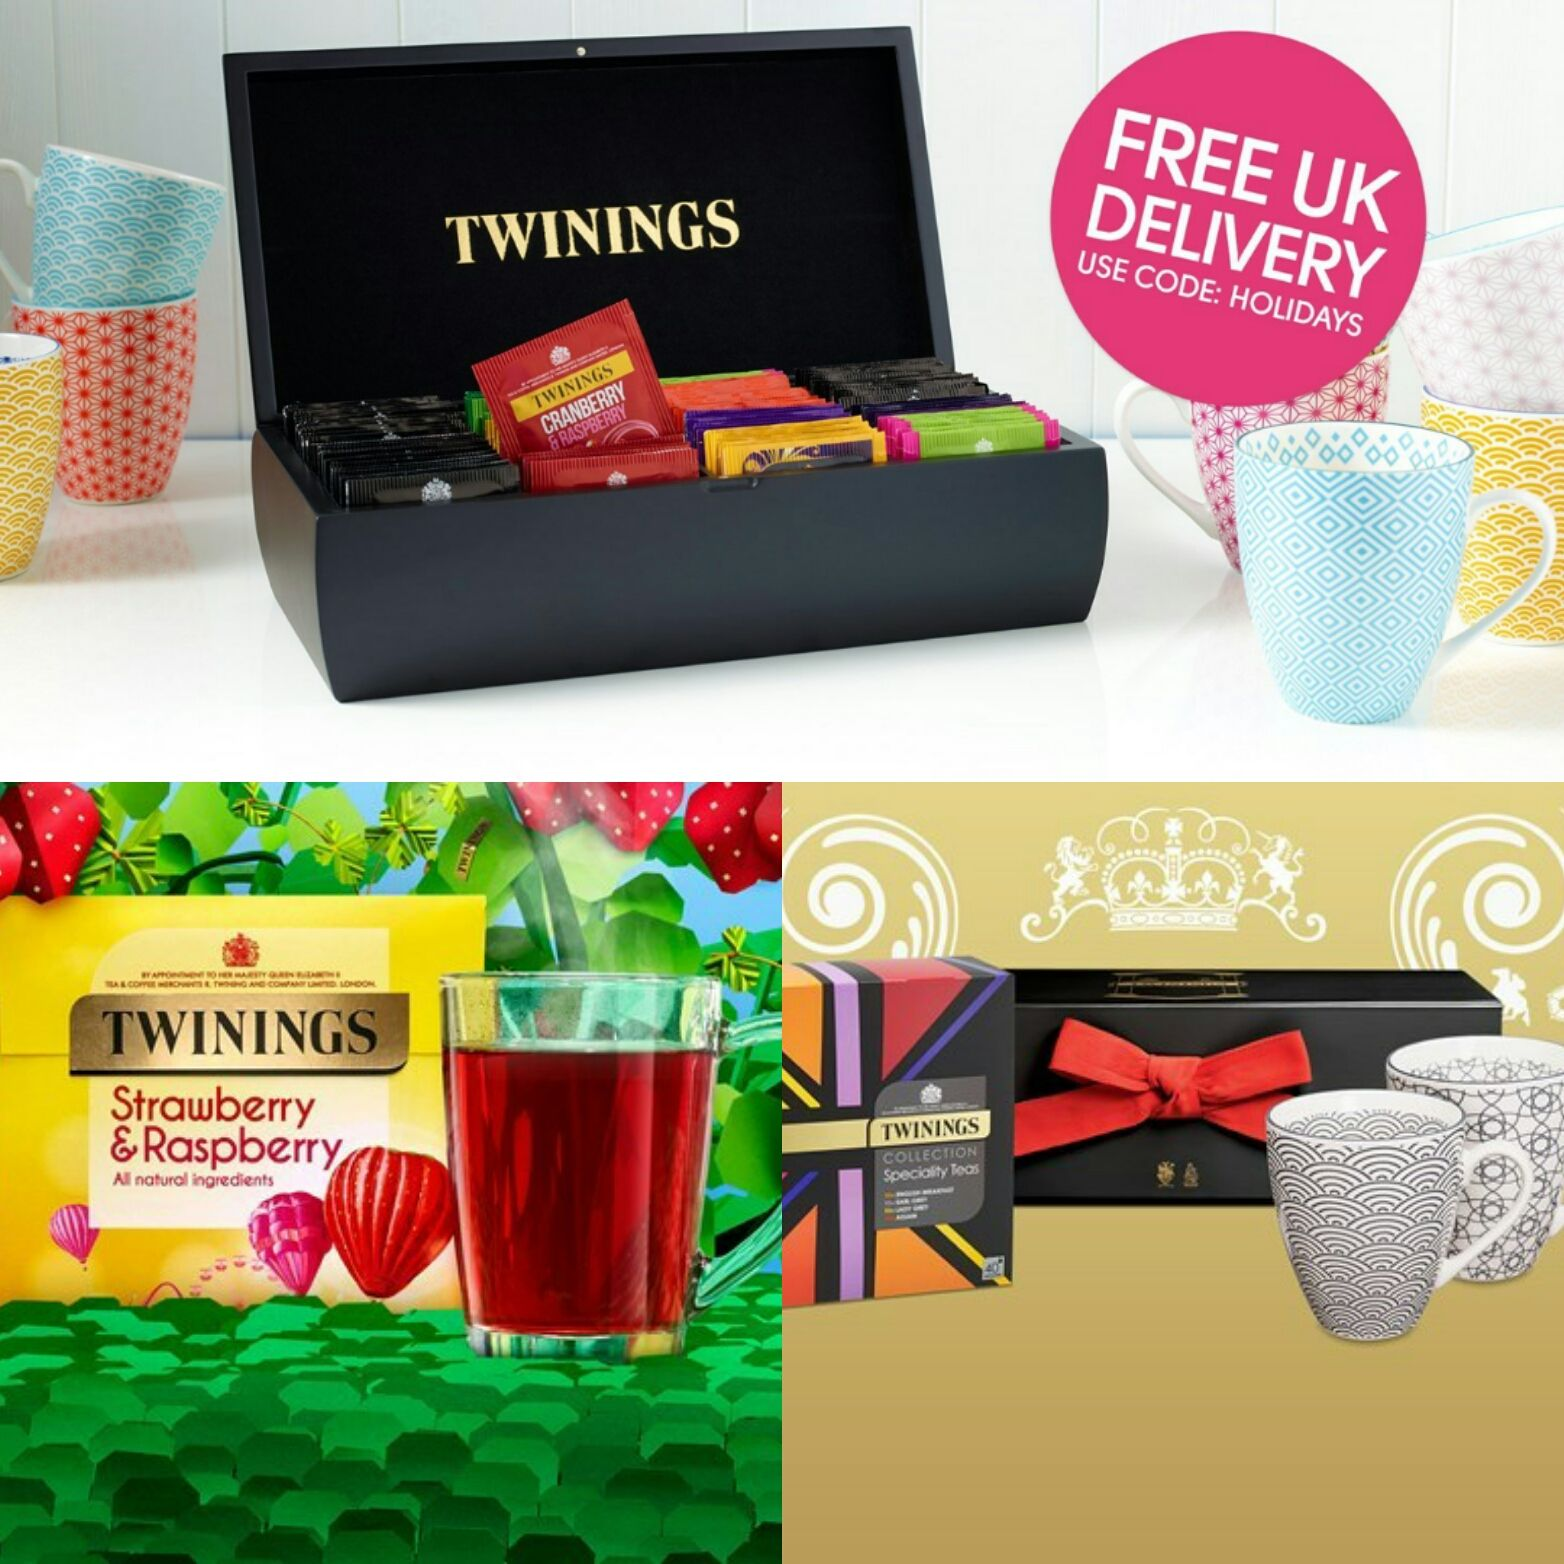 Enjoy Refreshing Tea with Free Delivery Over £10 – enter code: HOLIDAYS available at Twinings Valid from: 27 April - 1st May 2017 https://goo.gl/hlk50y